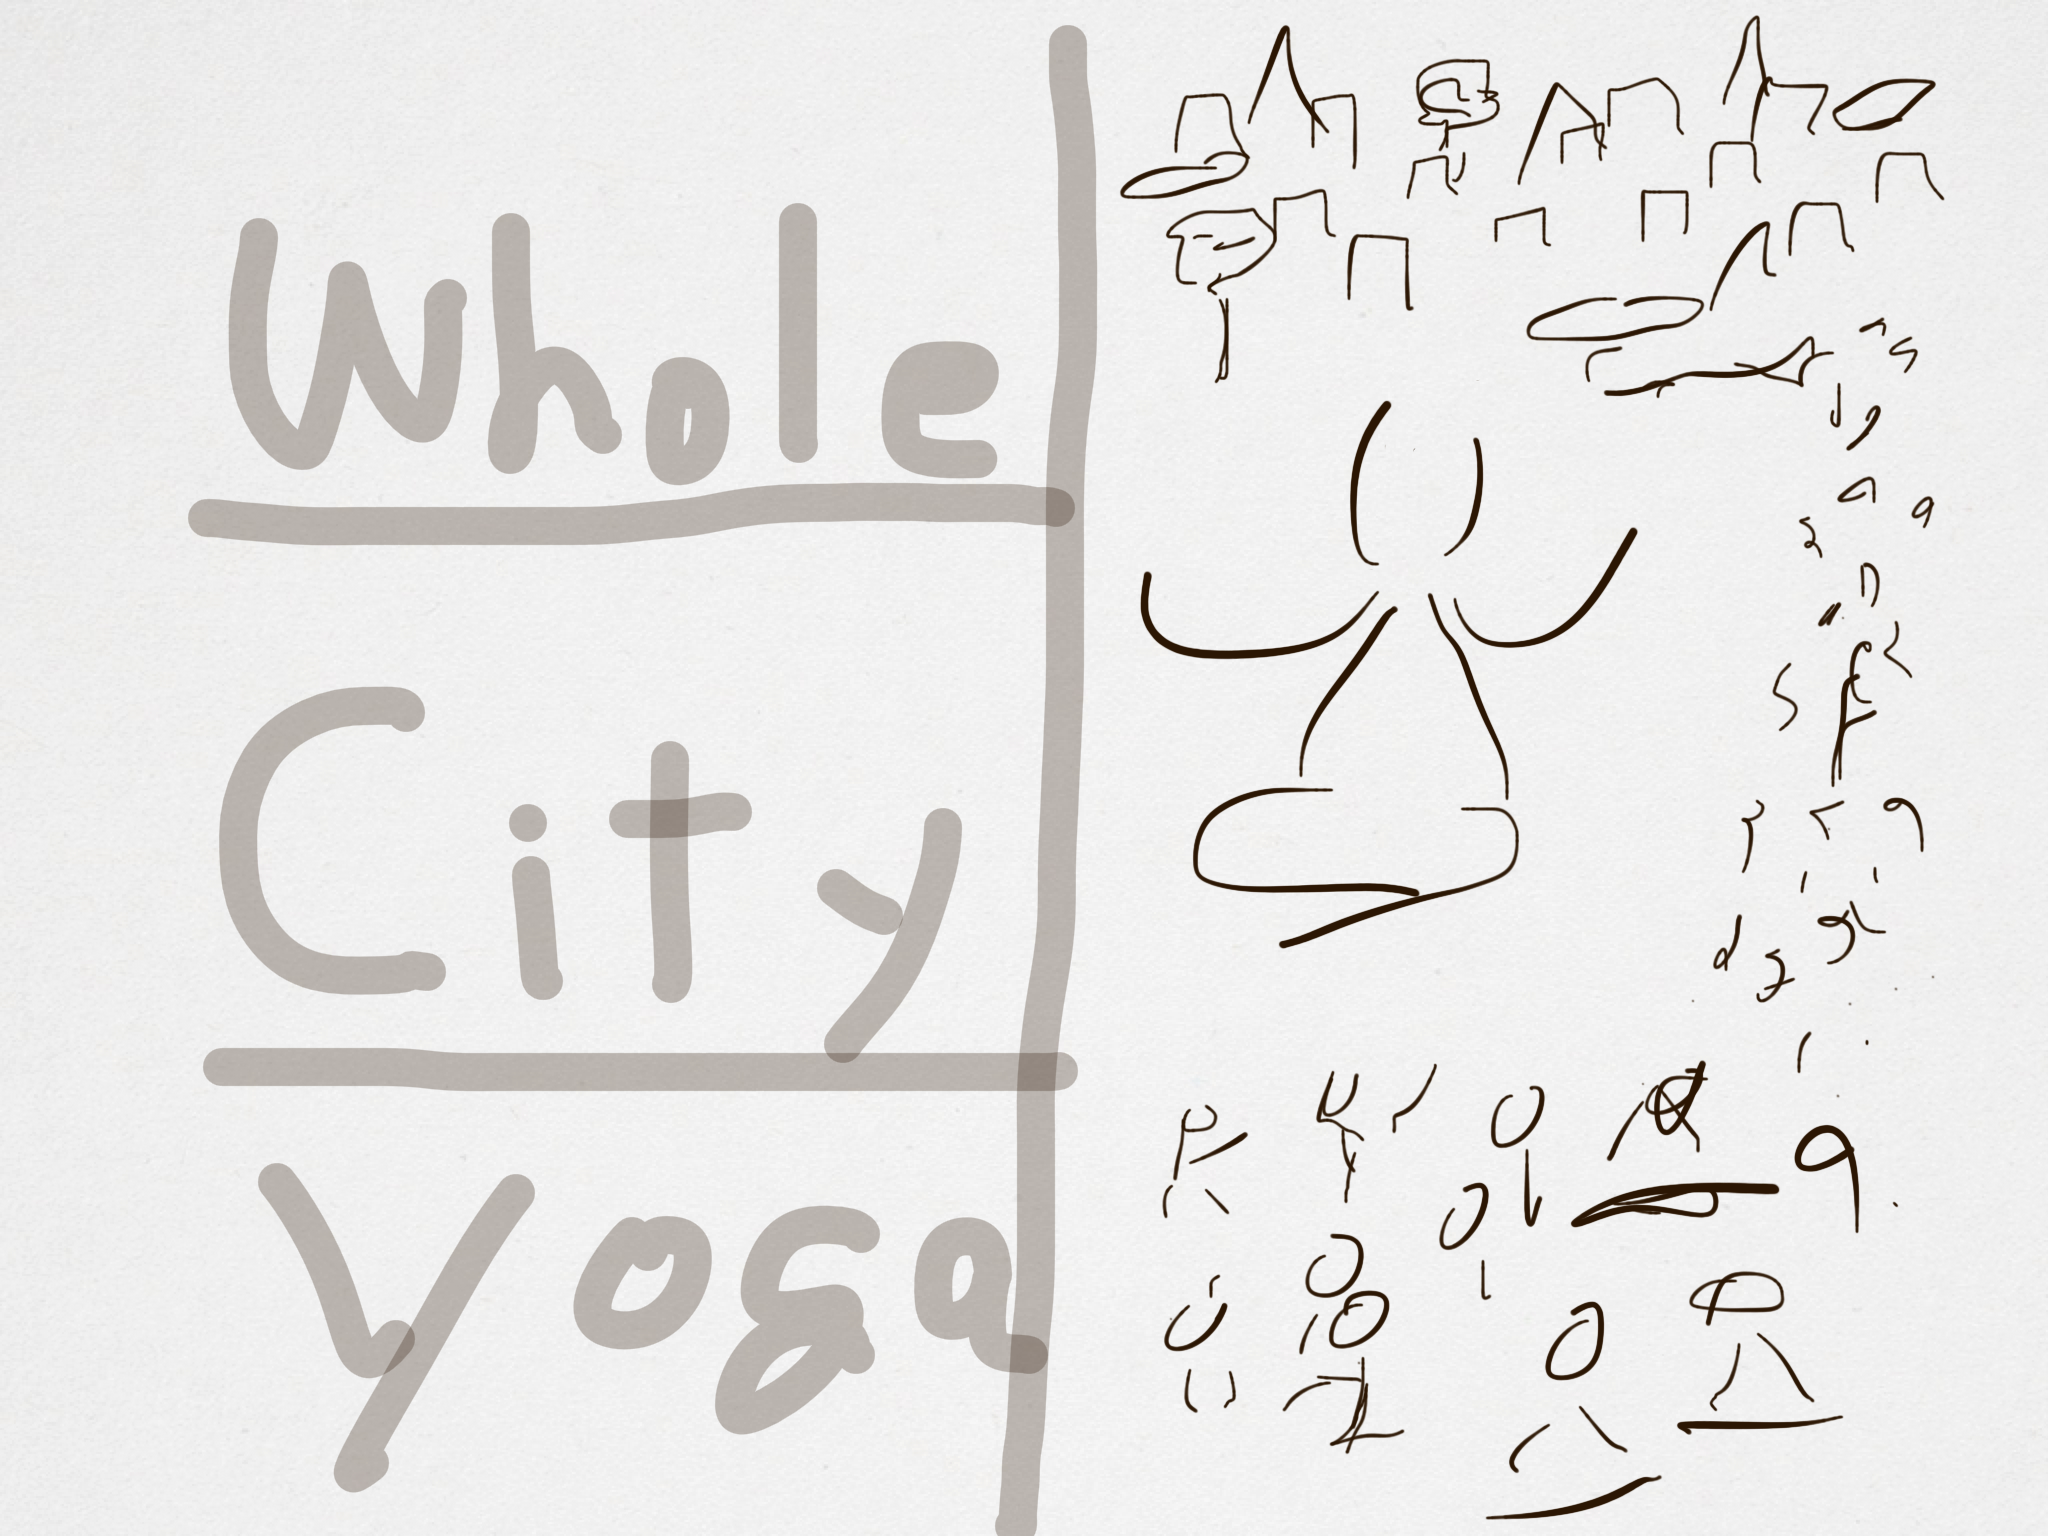 Whole City Yoga